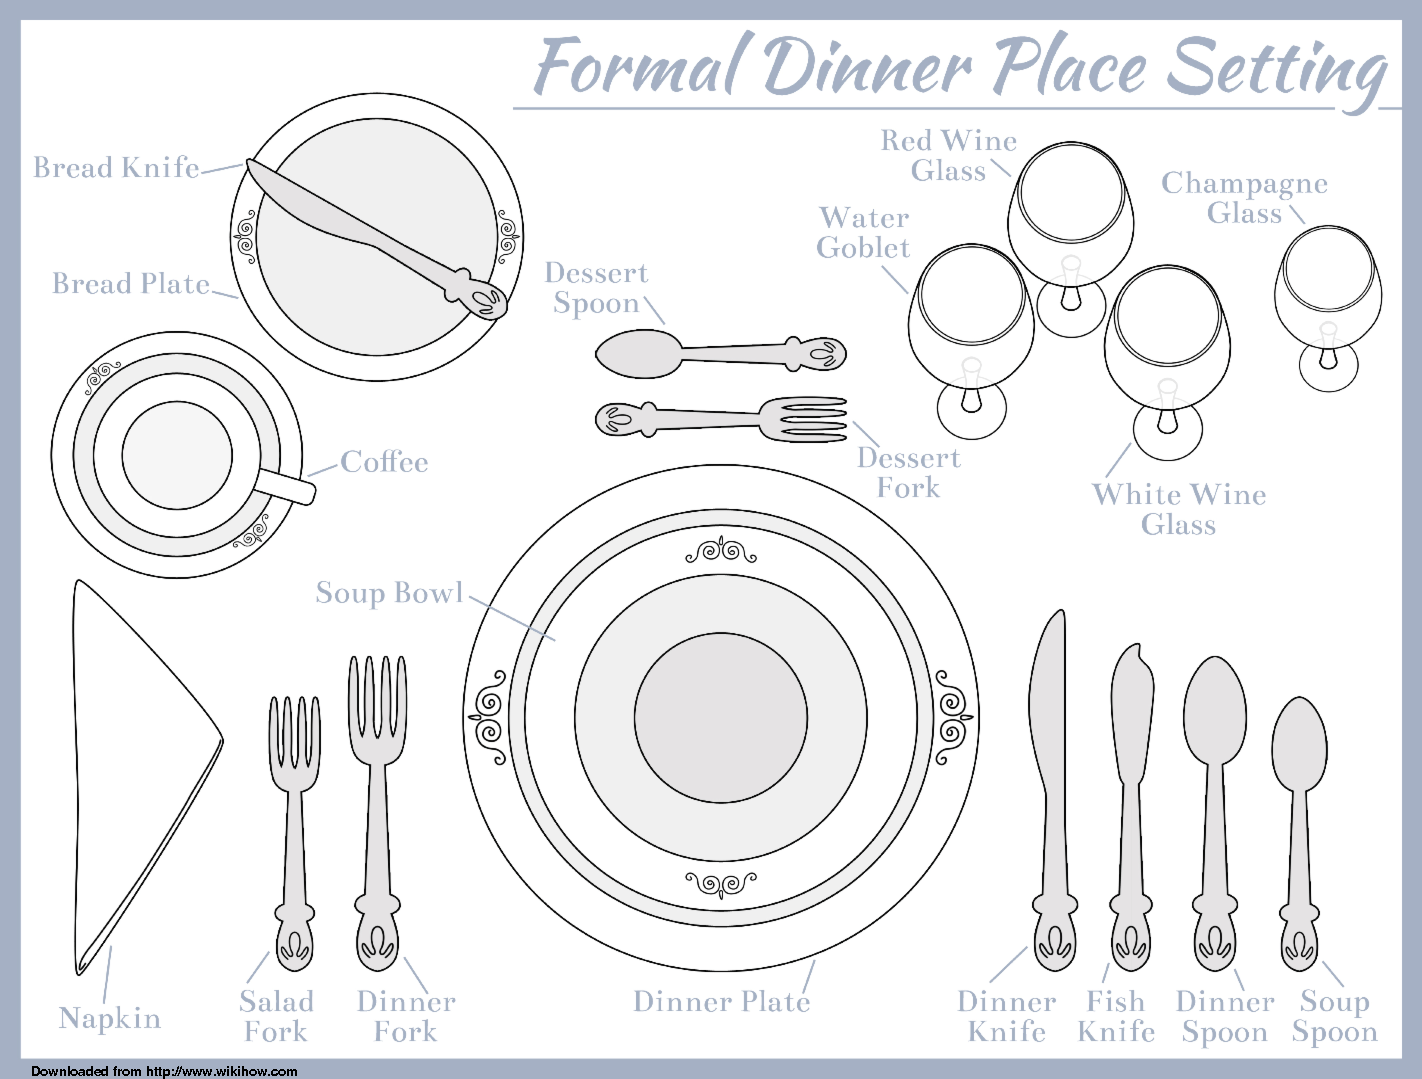 Formal dinner table setting etiquette - Formal Dinner Place Setting